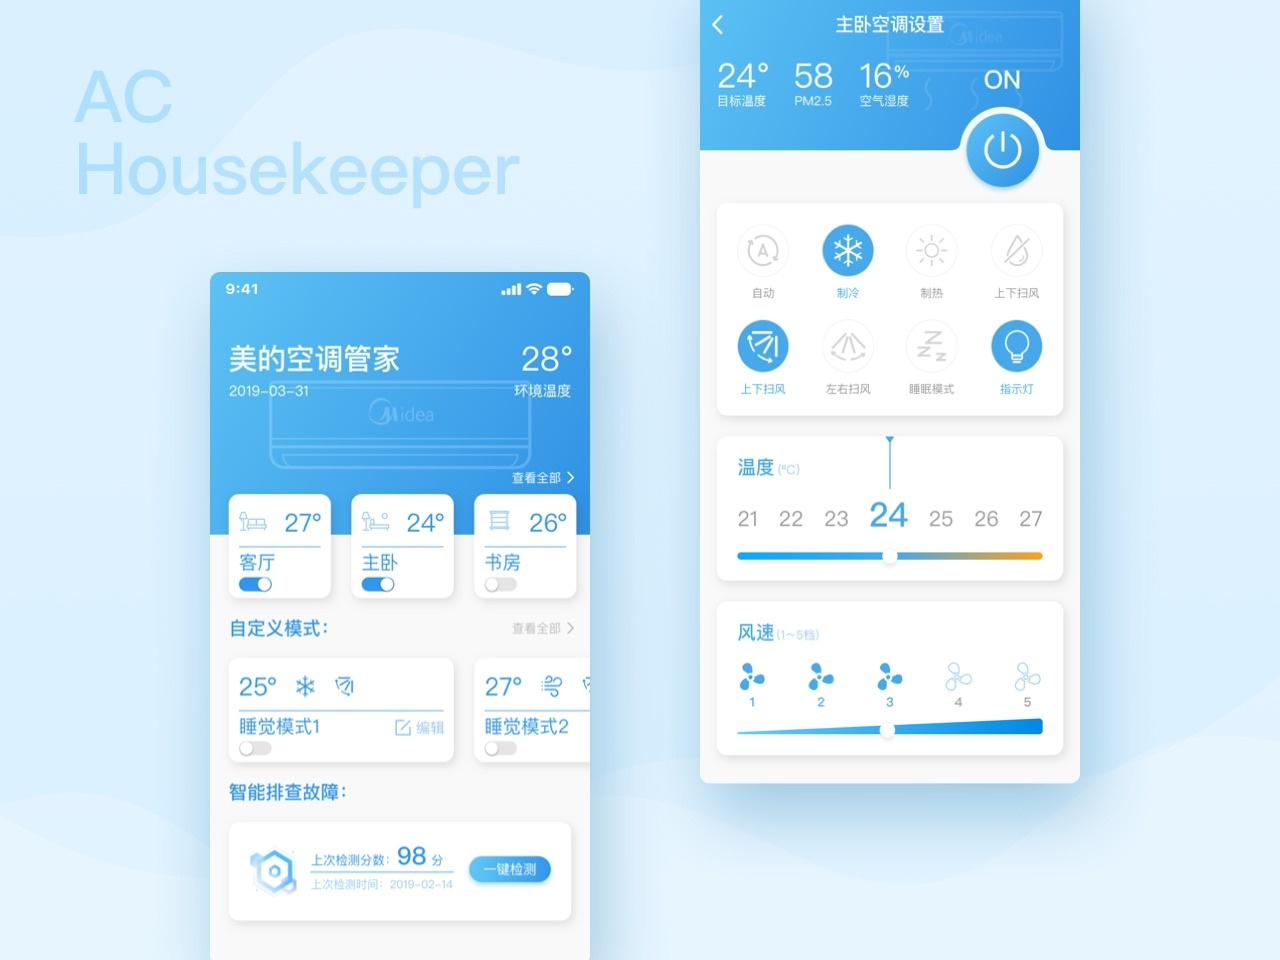 Midea Ac Housekeeper by Jason Young on Dribbble